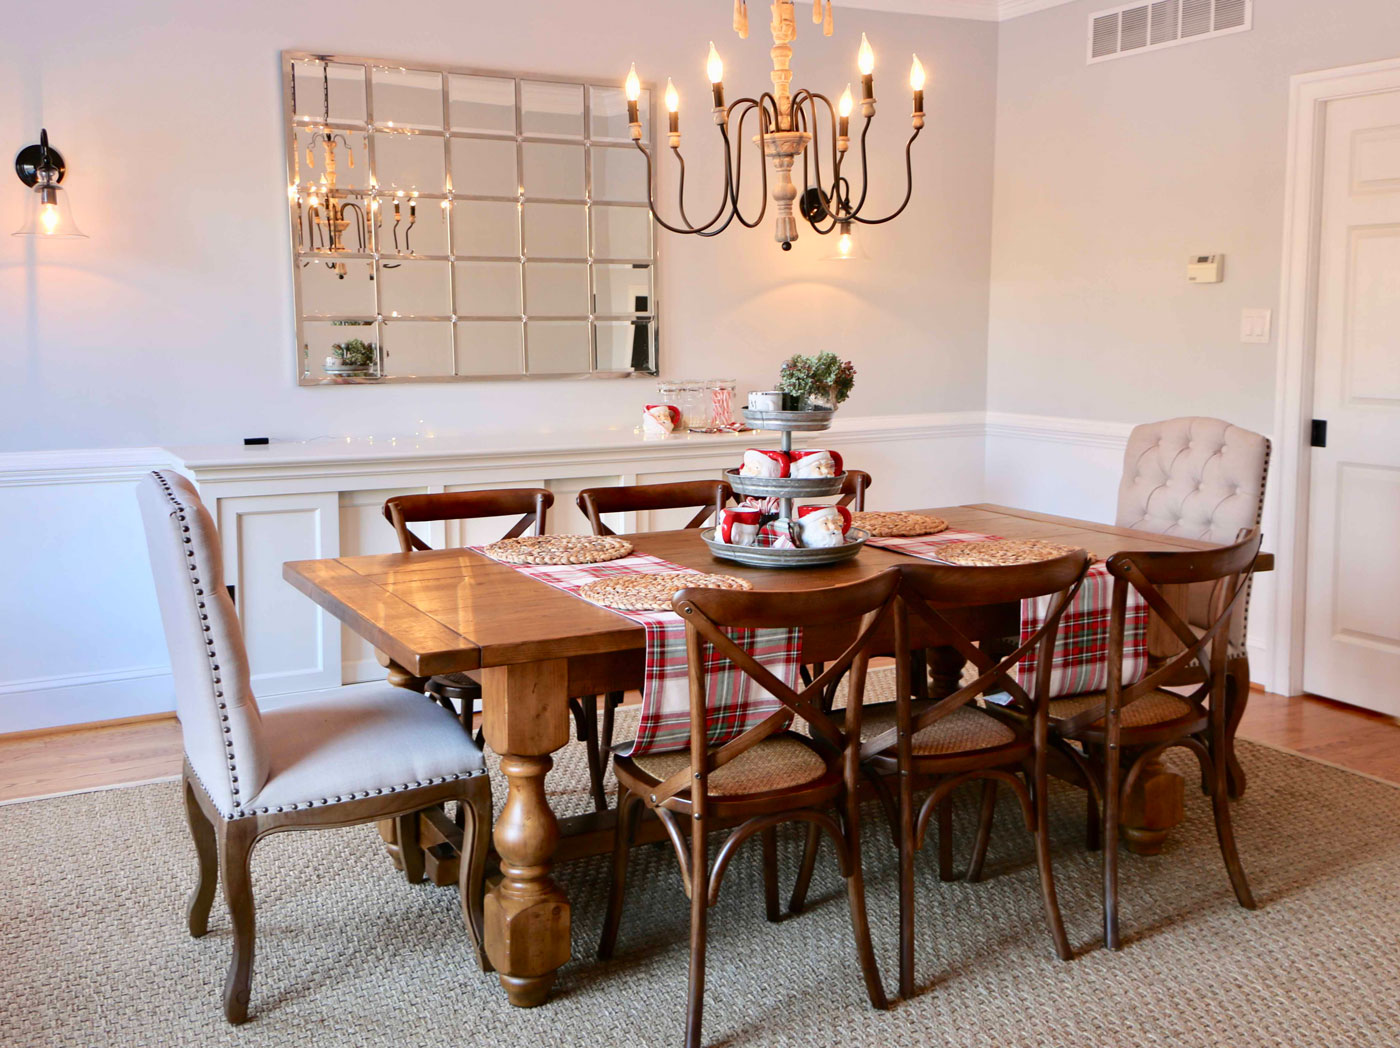 Dining Room Decor, Christmas Style, Pottery Barn Eagan Mirror, Pottery Barn Dining Table, Cross Back Farmhouse Chairs, Wayfair Dining Chairs, World Market Wooden Chandelier